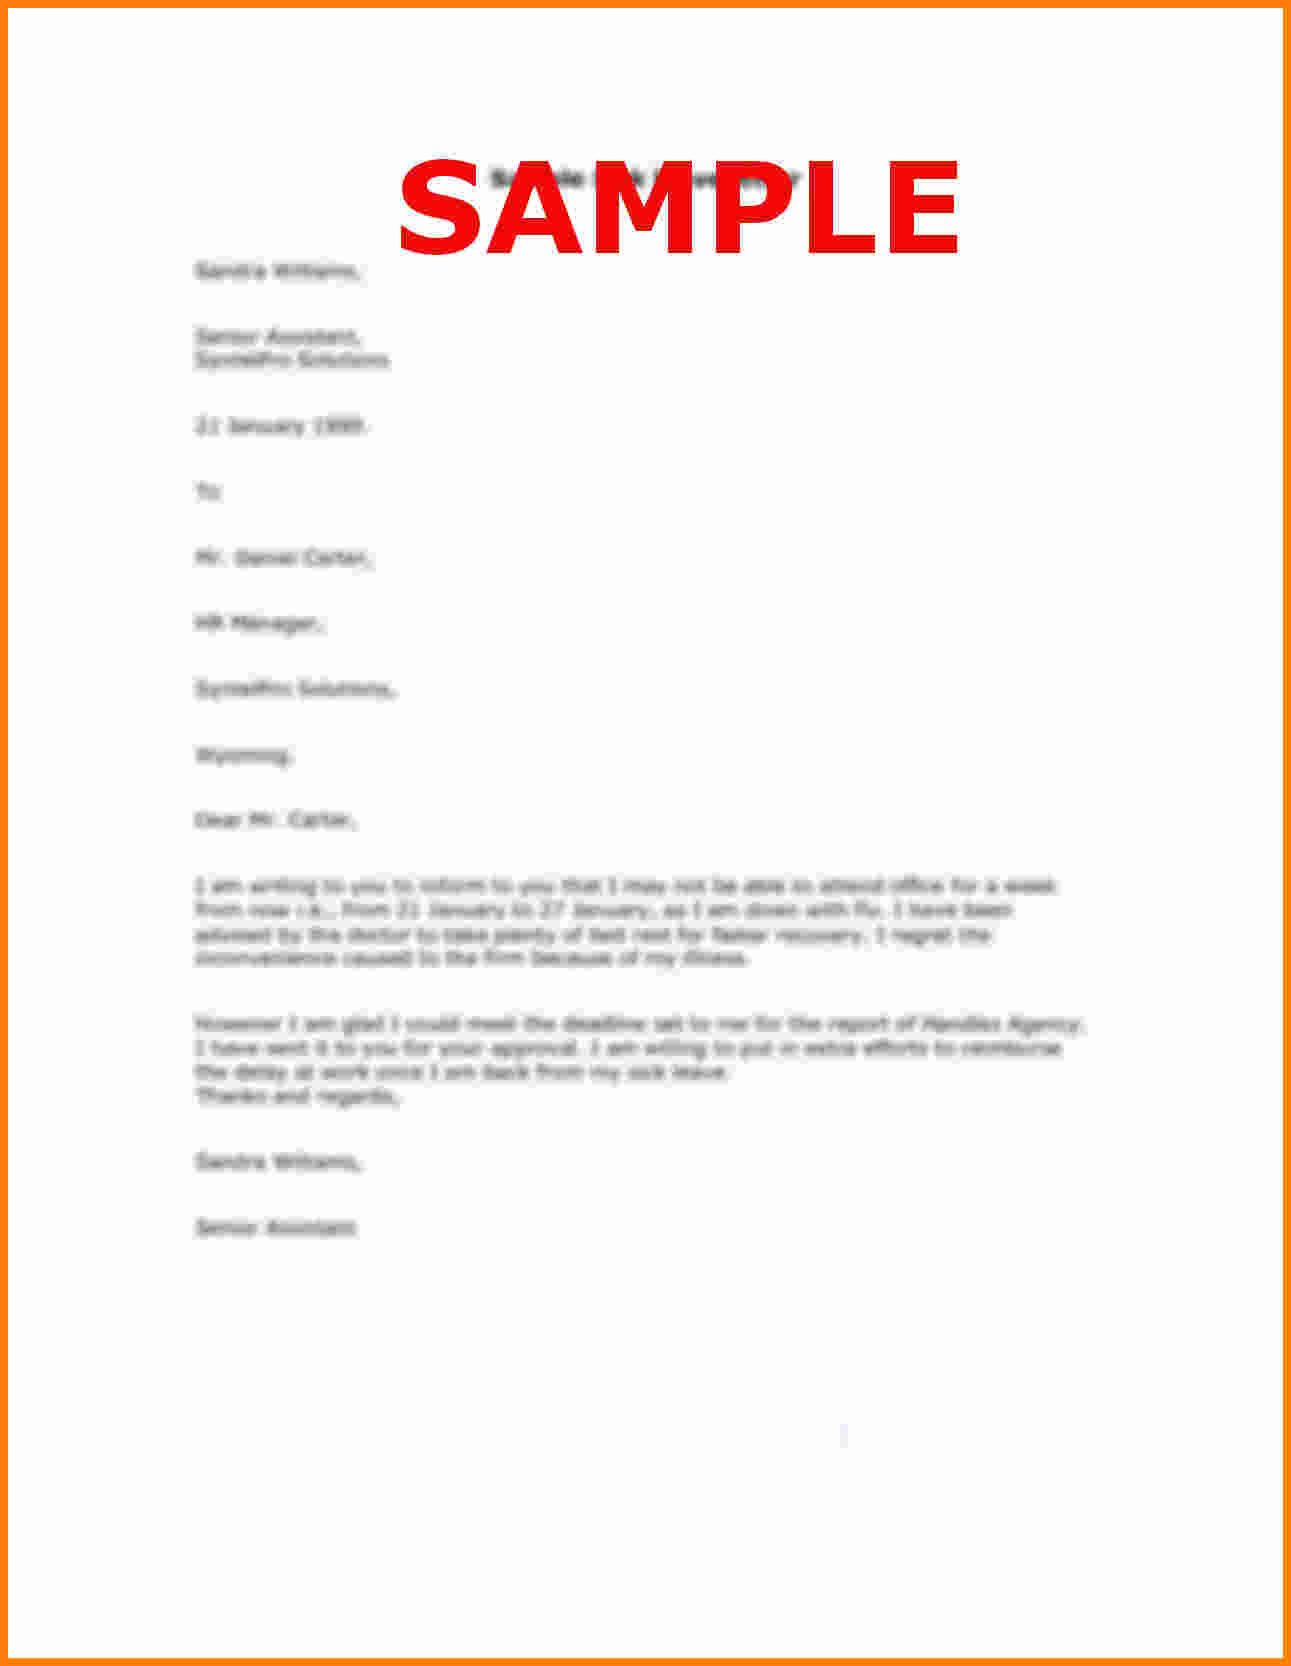 letter format personal sample reason leave letterg casual application form